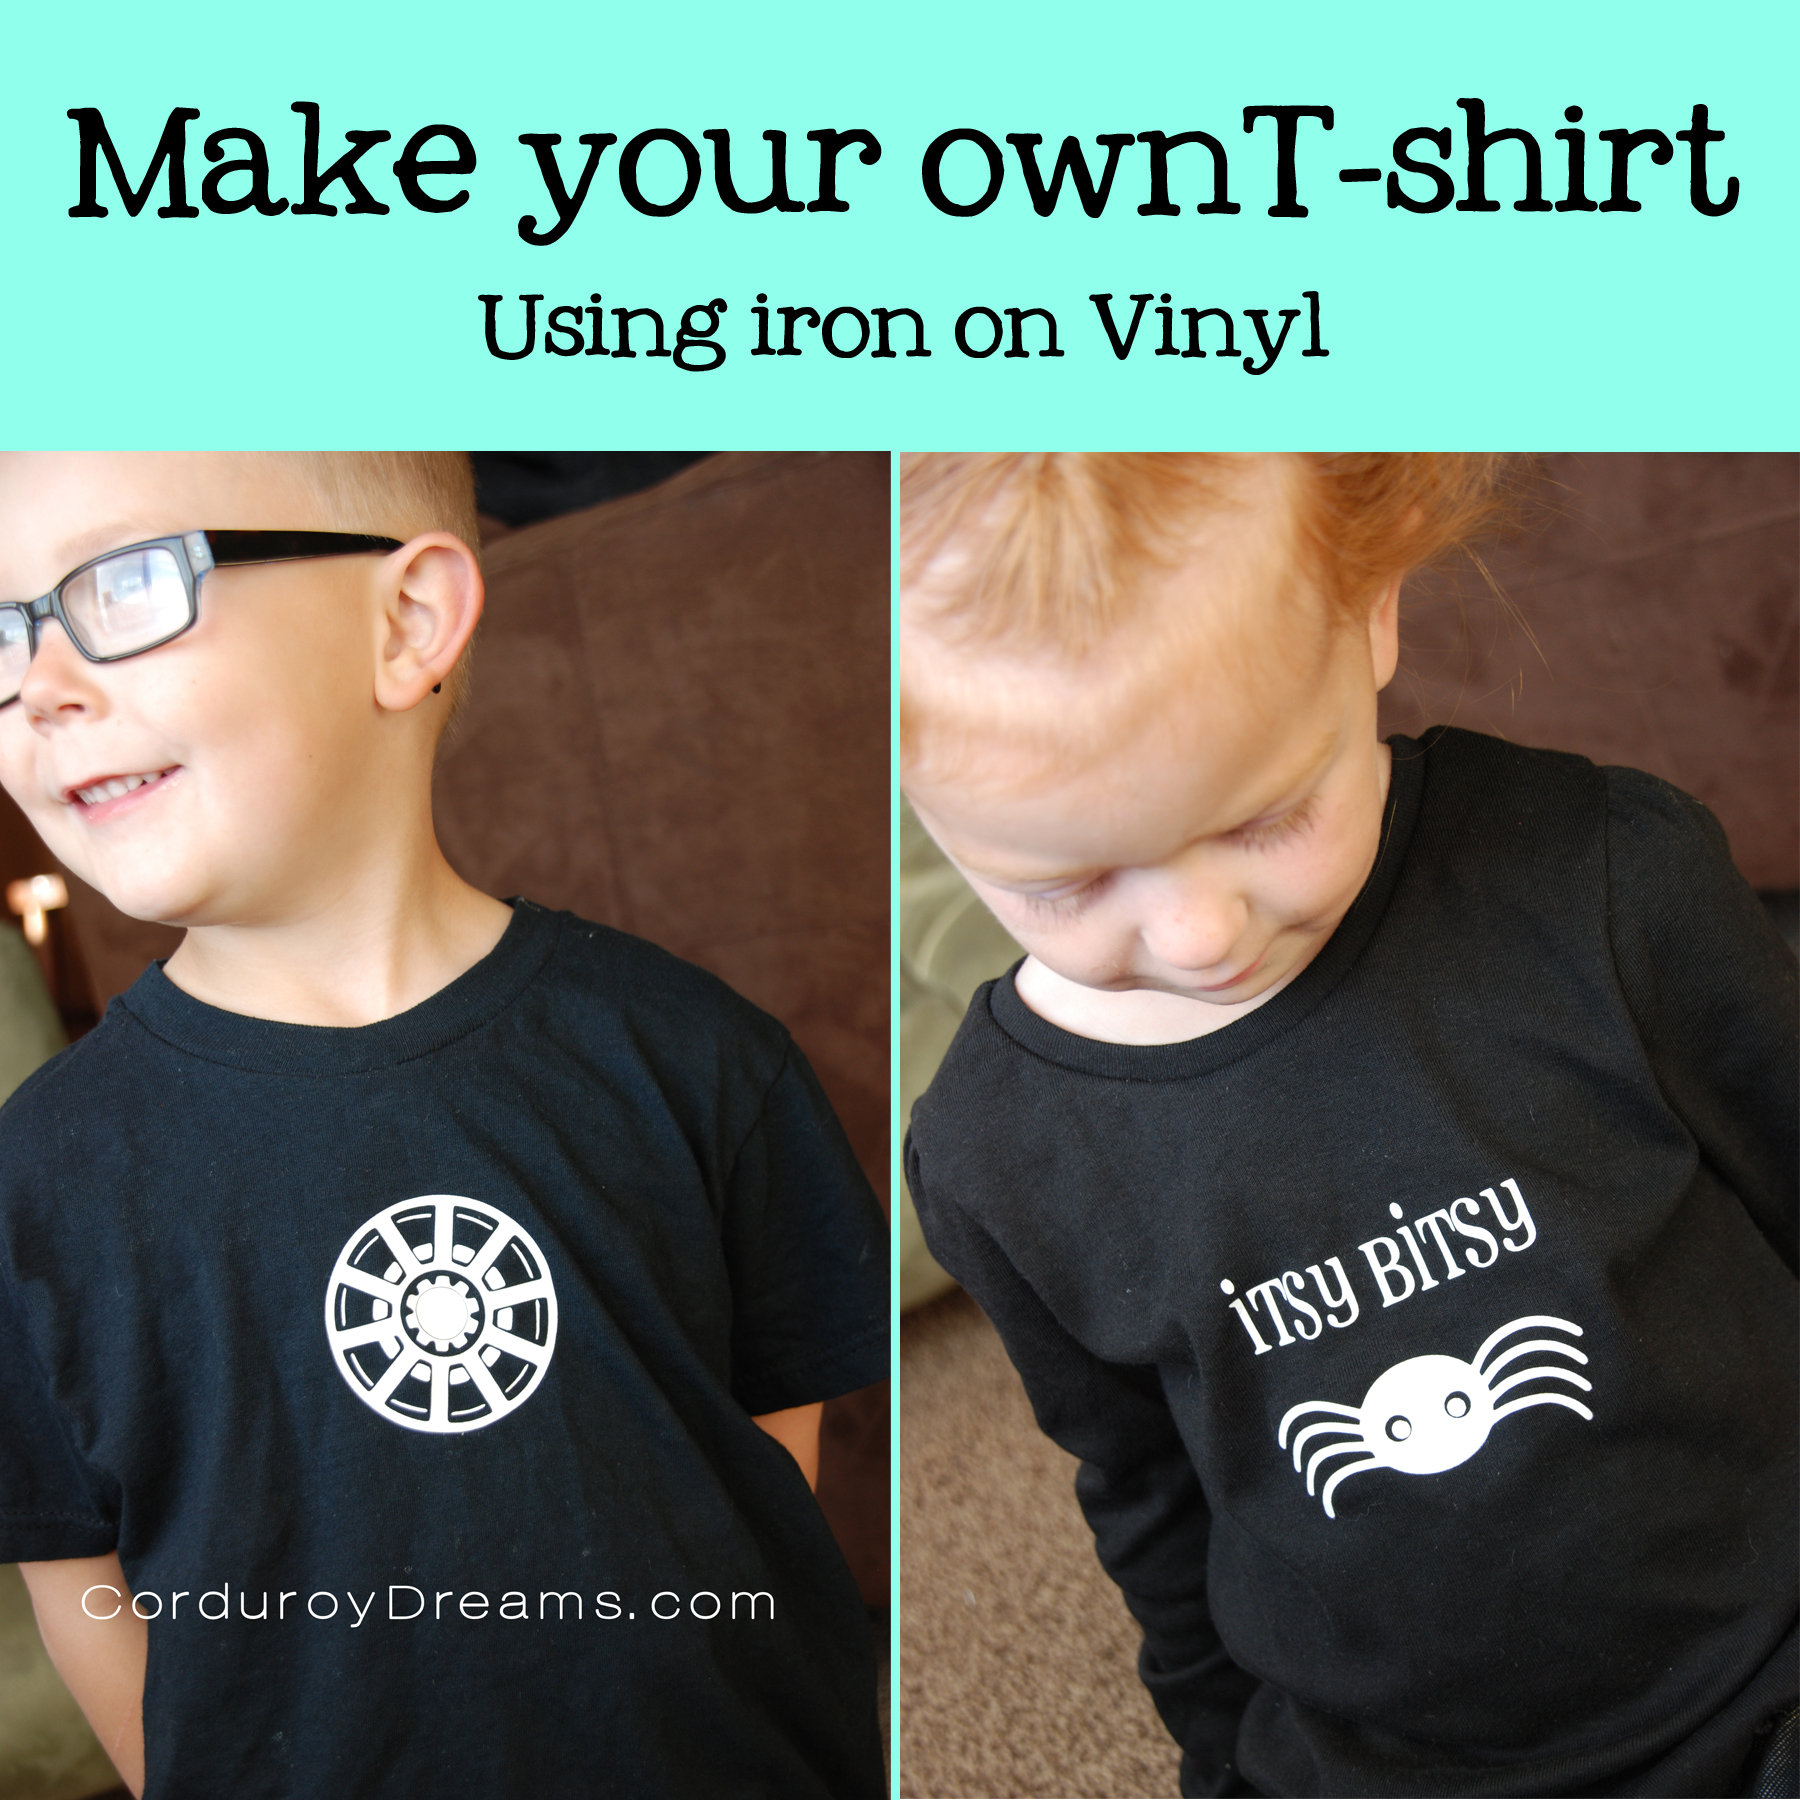 Make your own t shirt using iron on vinyl the creative mom for Create your own iron on transfer for t shirt